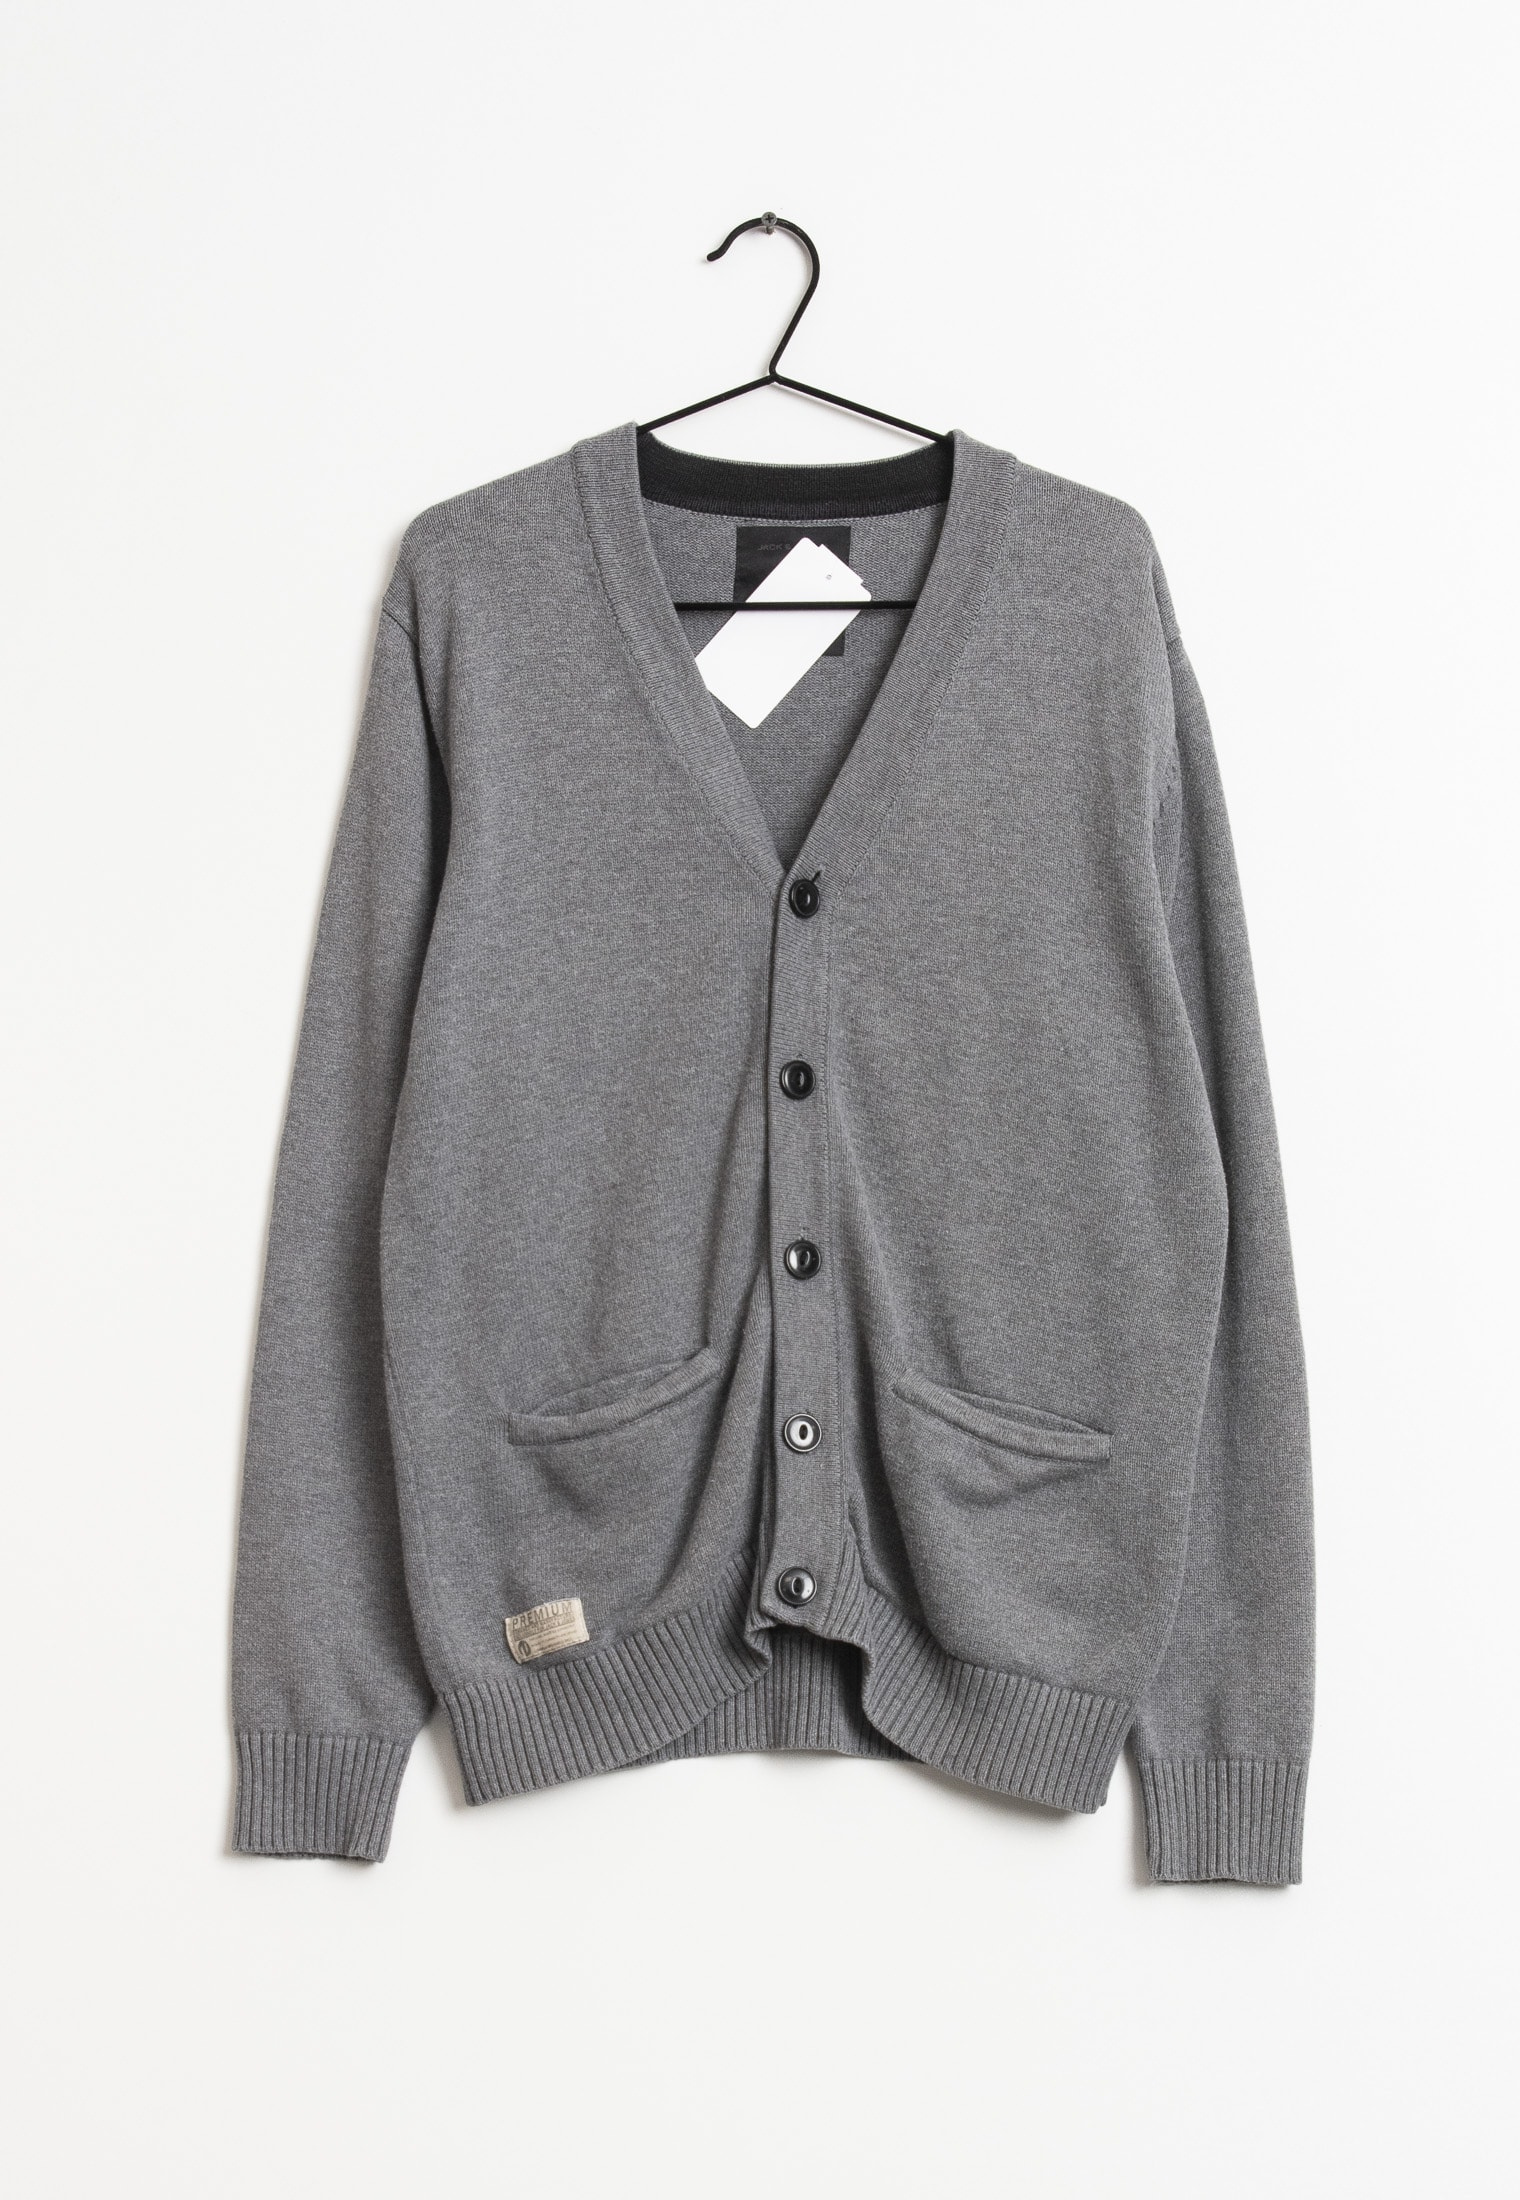 Jack & Jones cardigan, grå, XL